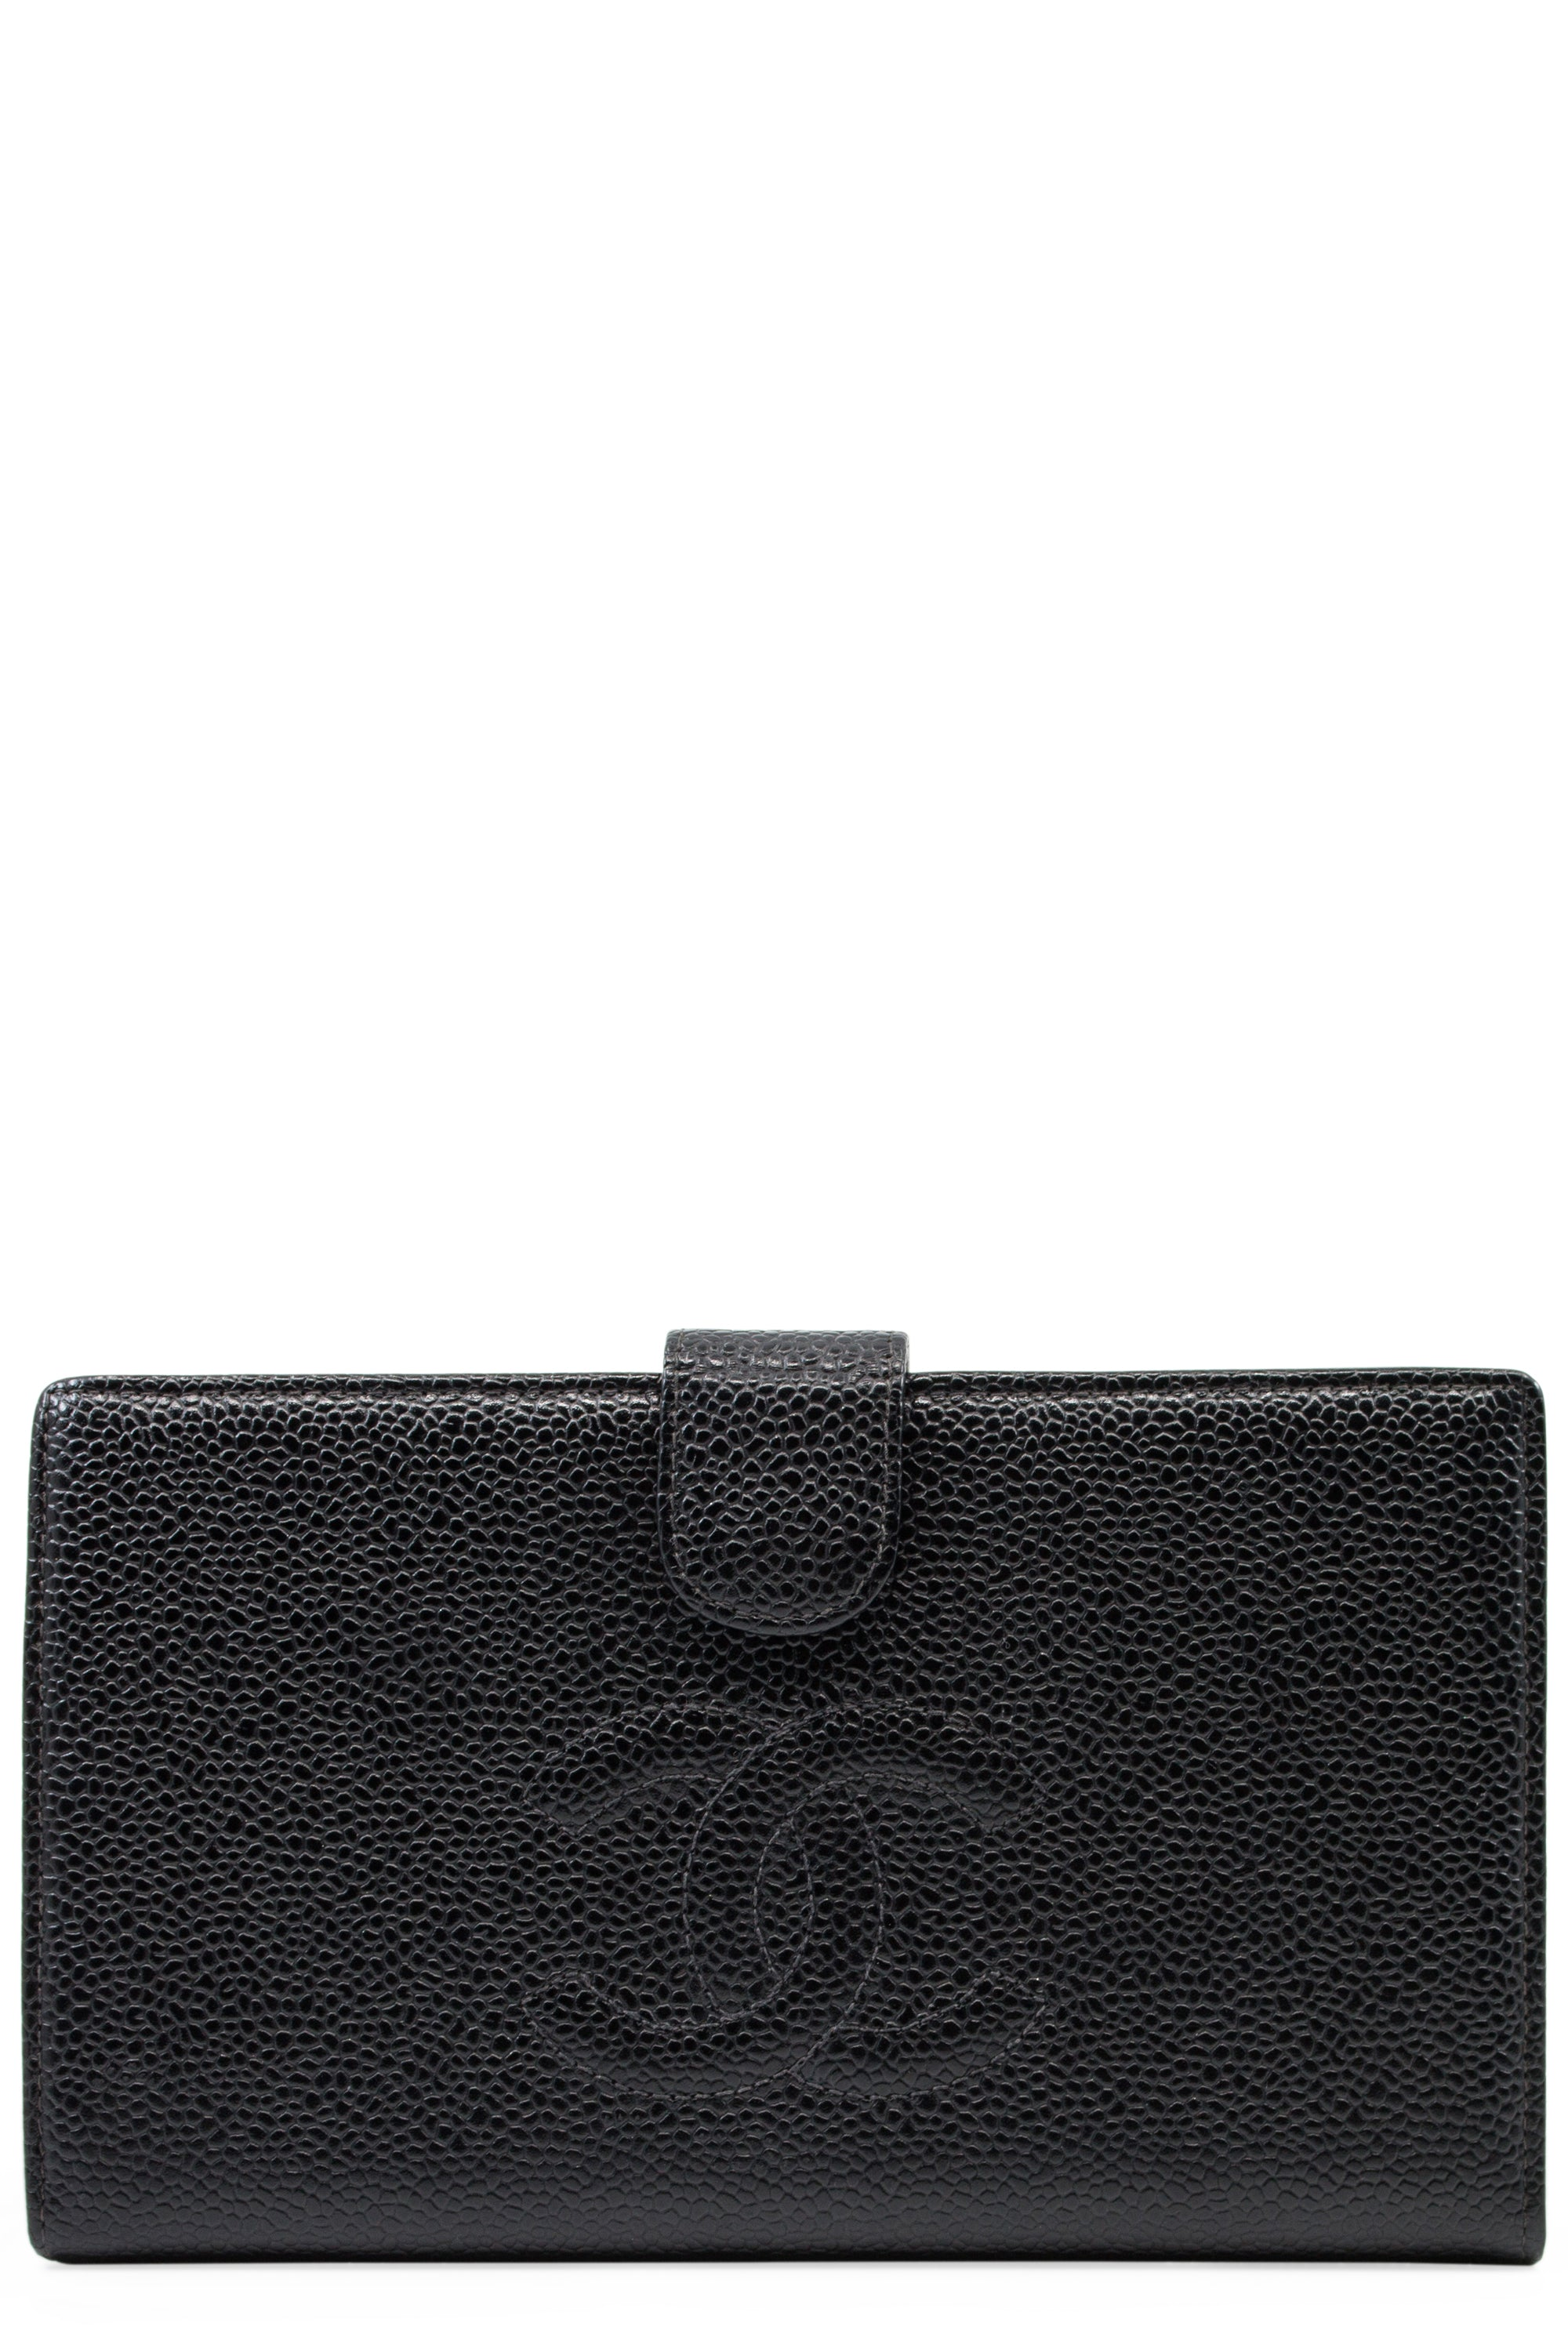 CHANEL Wallet Long Bifold Frontansicht